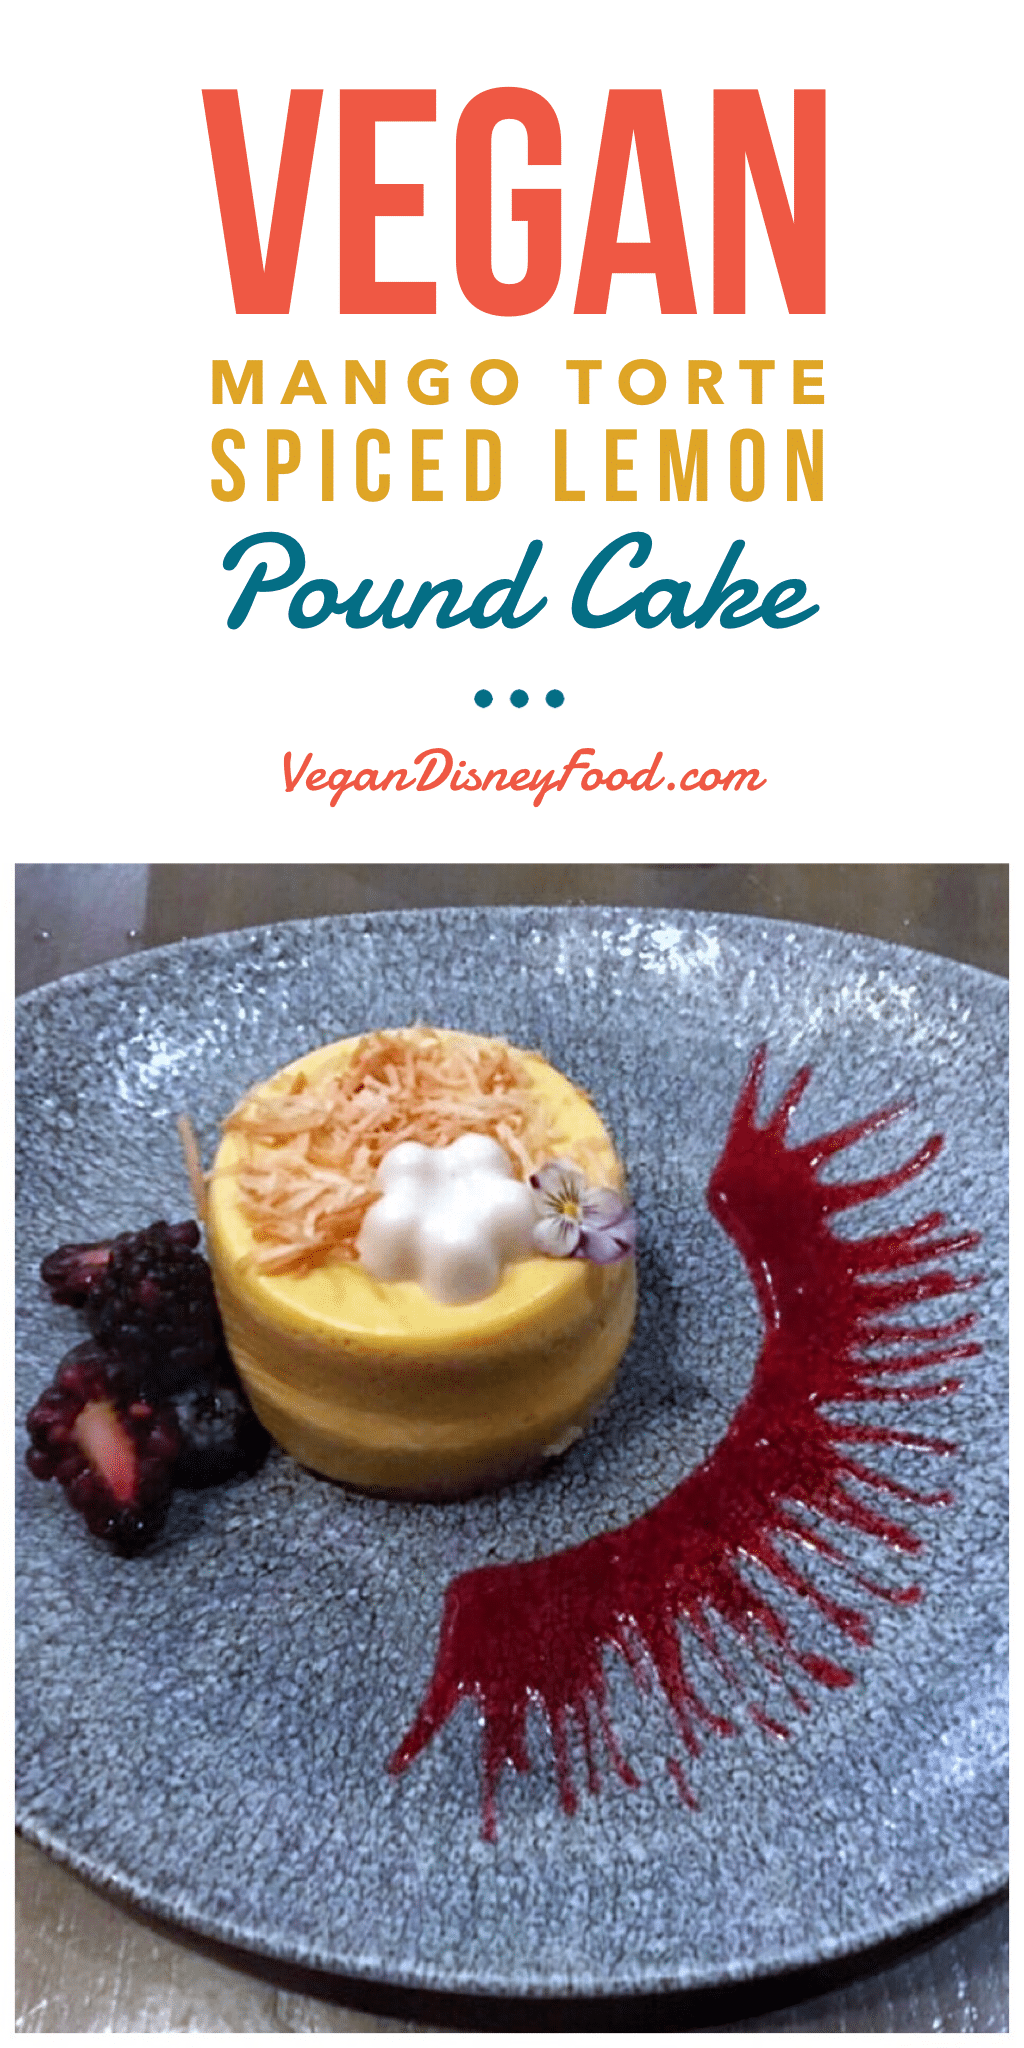 Vegan Mango Torte Spiced Lemon Pound Cake at Ale and Compass Restaurant in the Yacht Club Resort at Walt Disney World